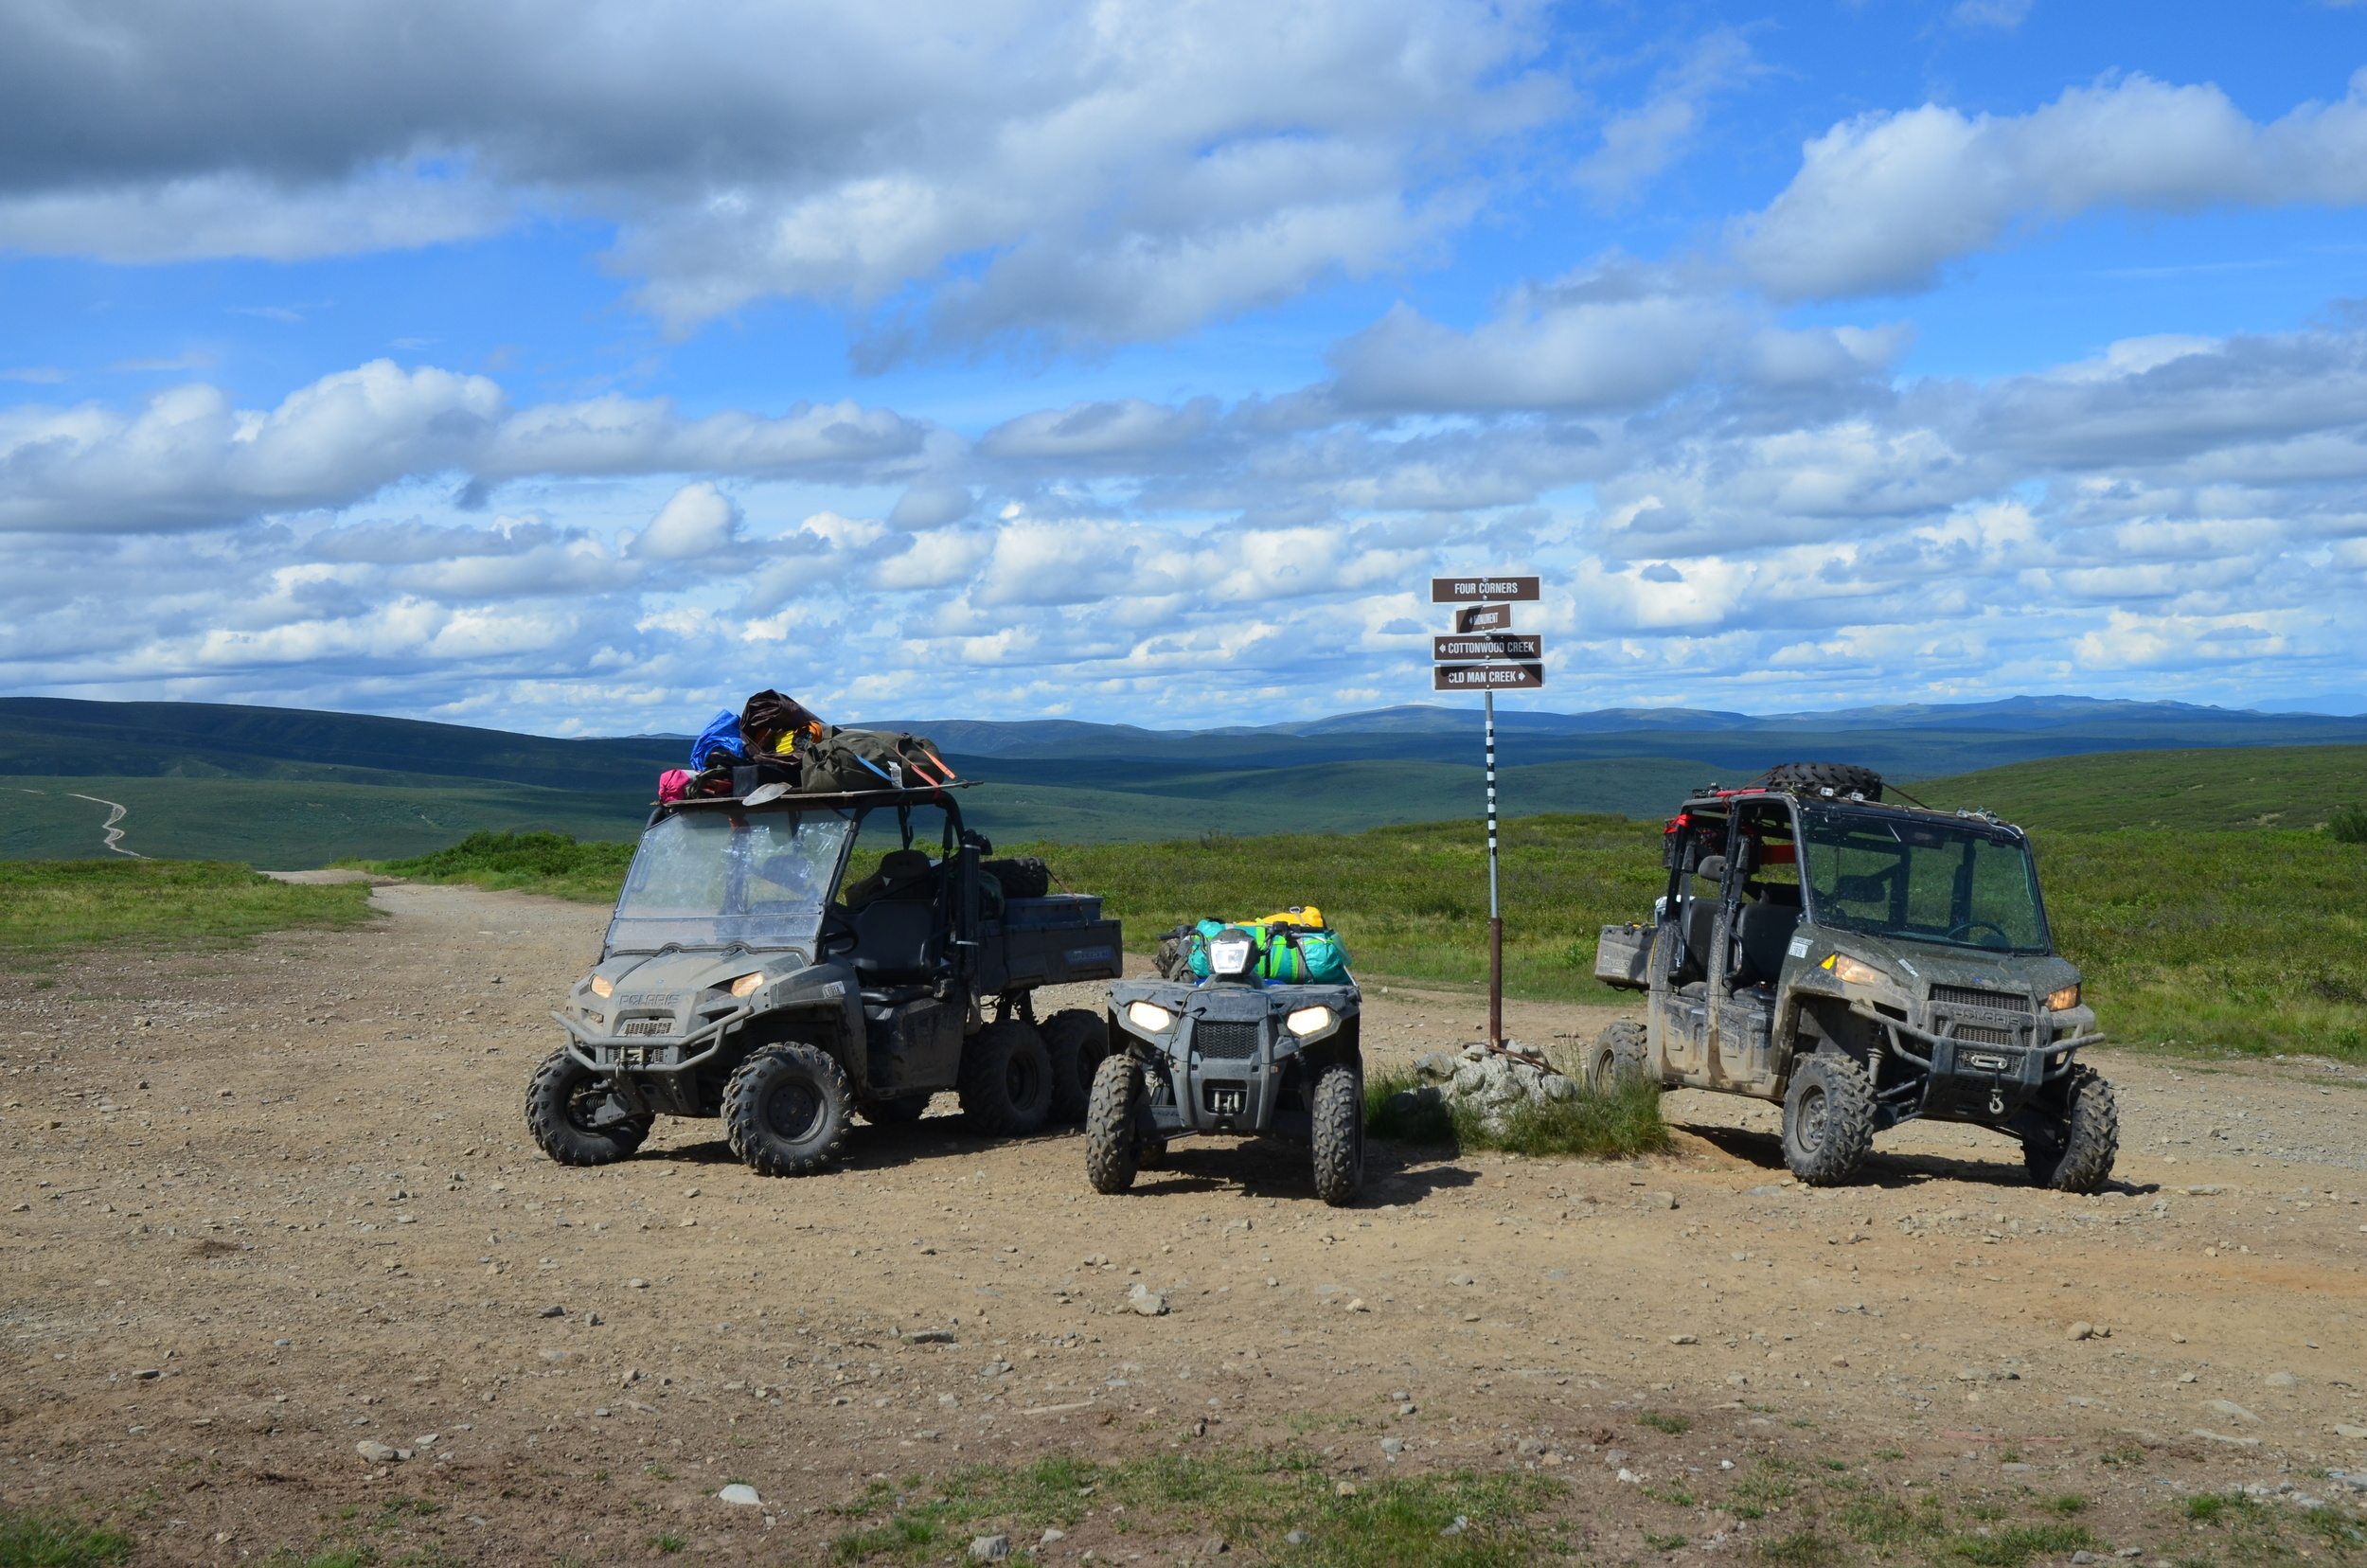 At Four Corners, the Alaskan Crossroads at Nelchina